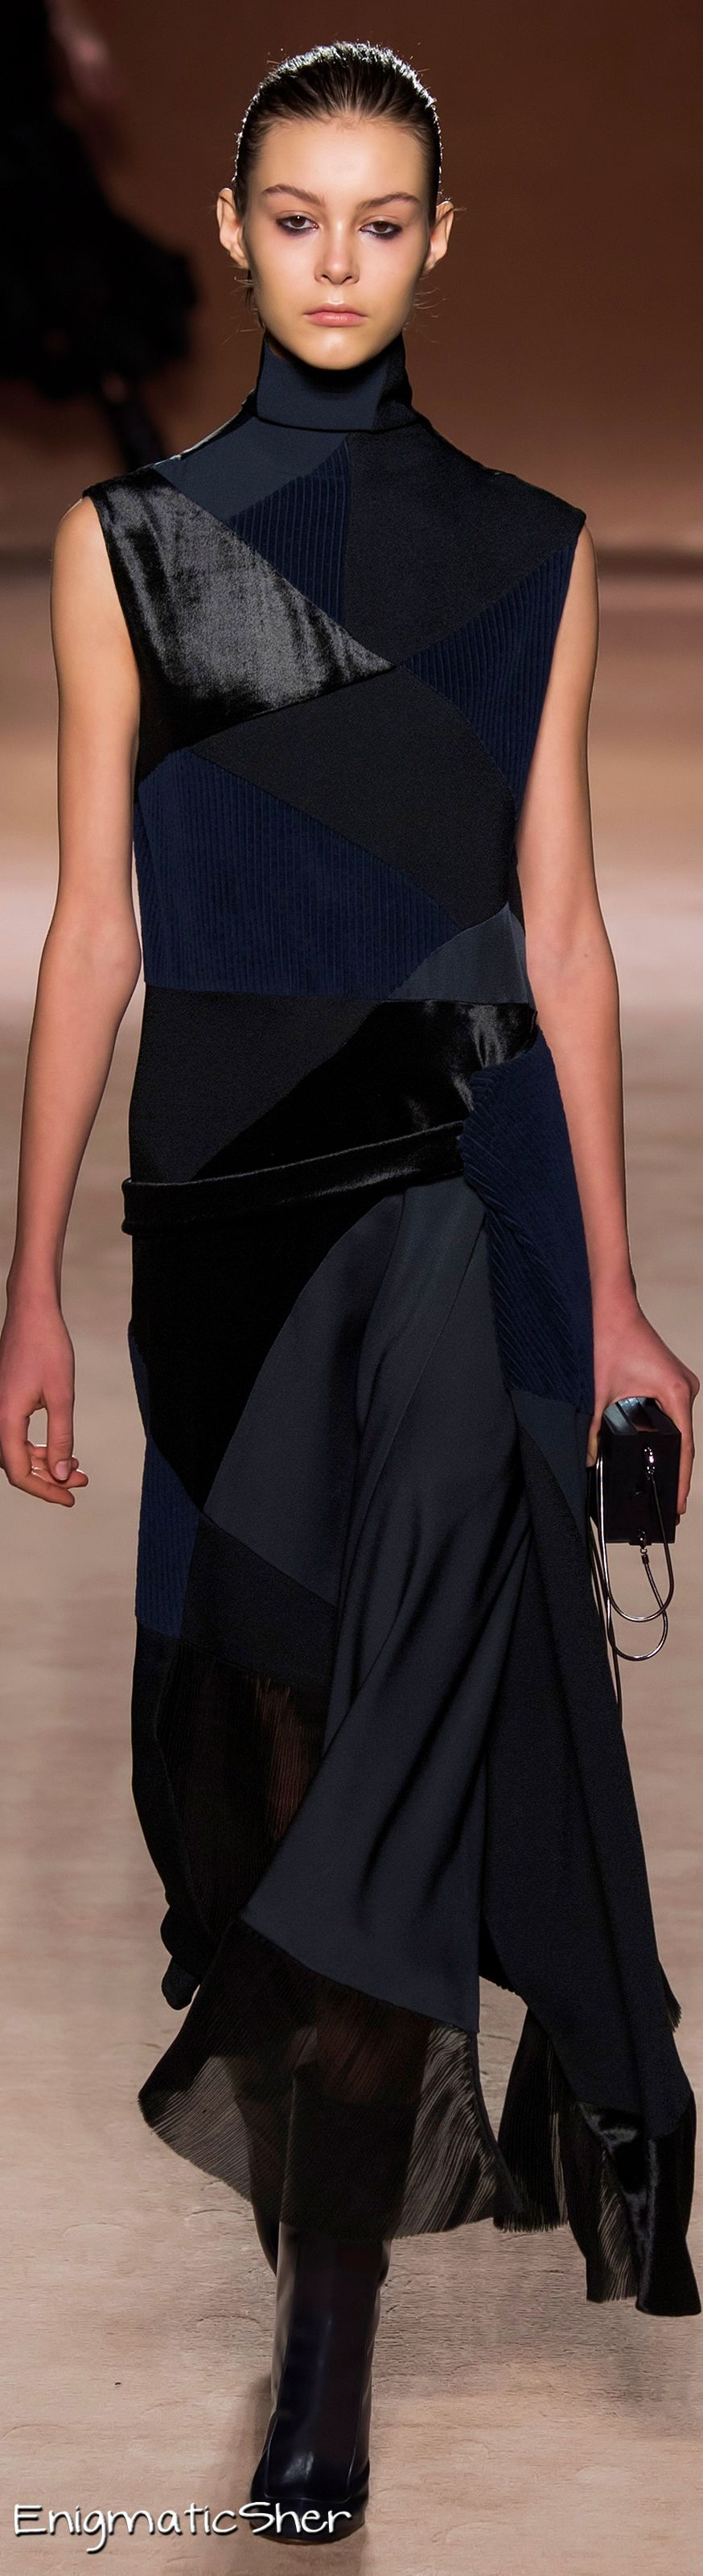 Victoria Beckham Collections Fall Winter 2015-16